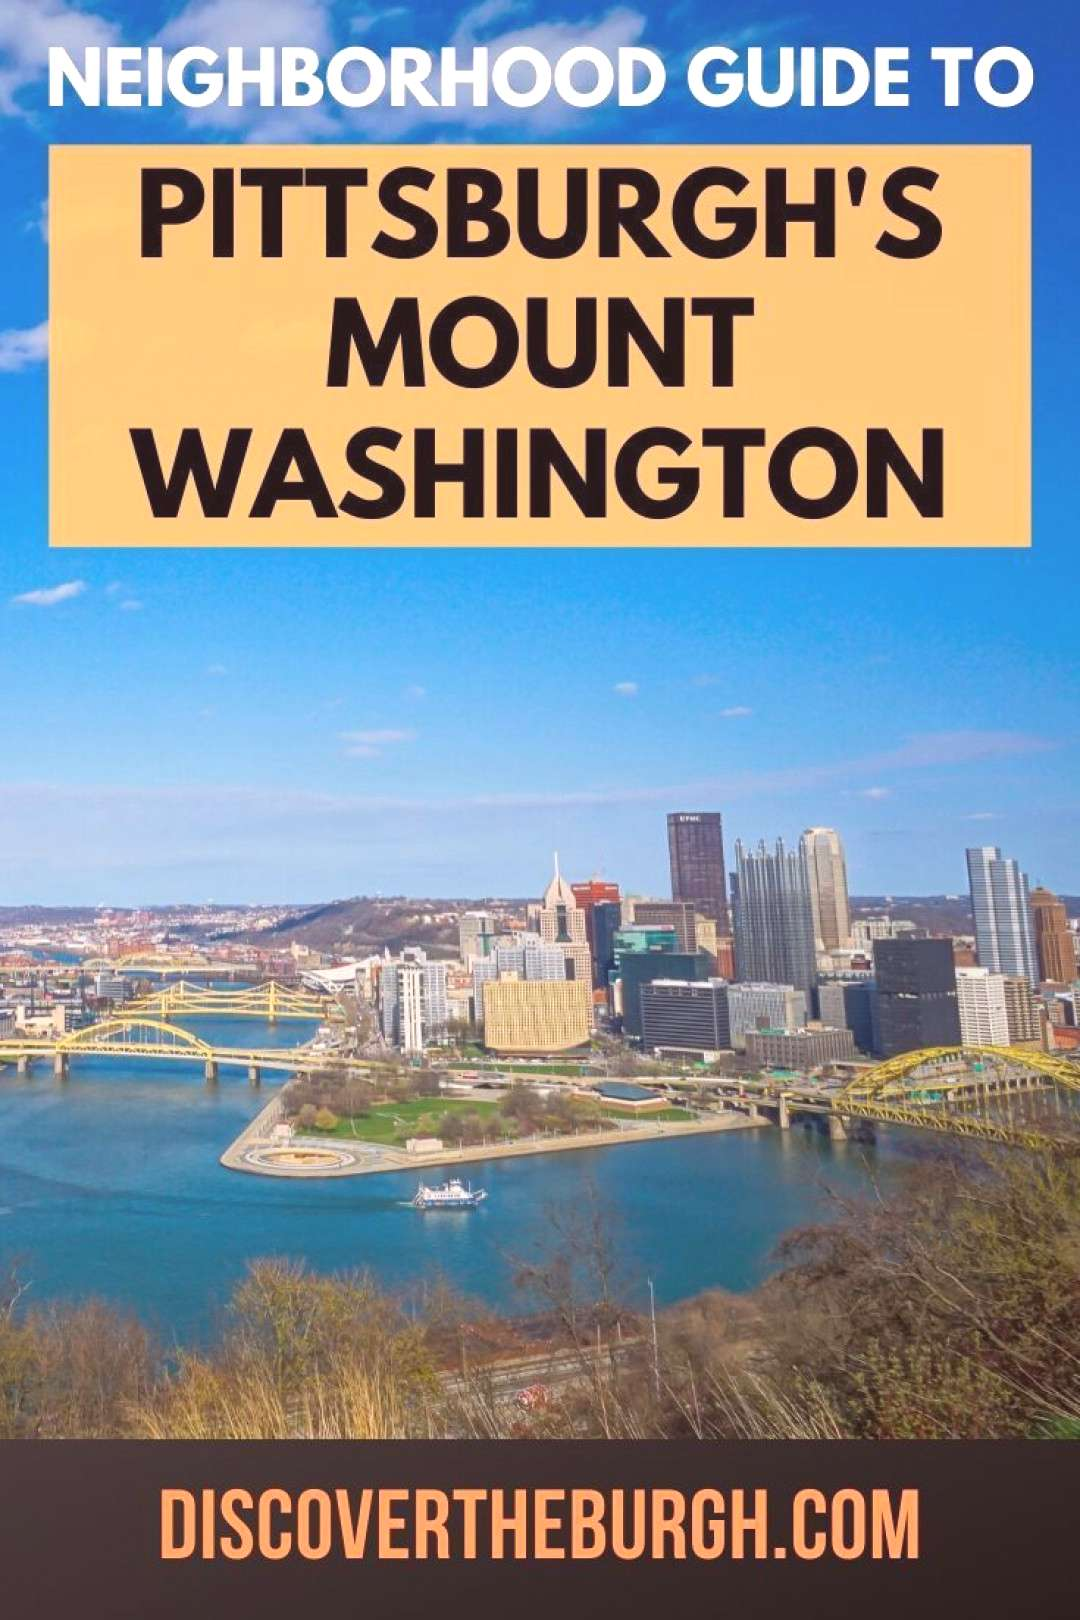 An Attraction & Eating Guide to Pittsburghs Mount Washington Mount Washington in Pittsburgh is kno